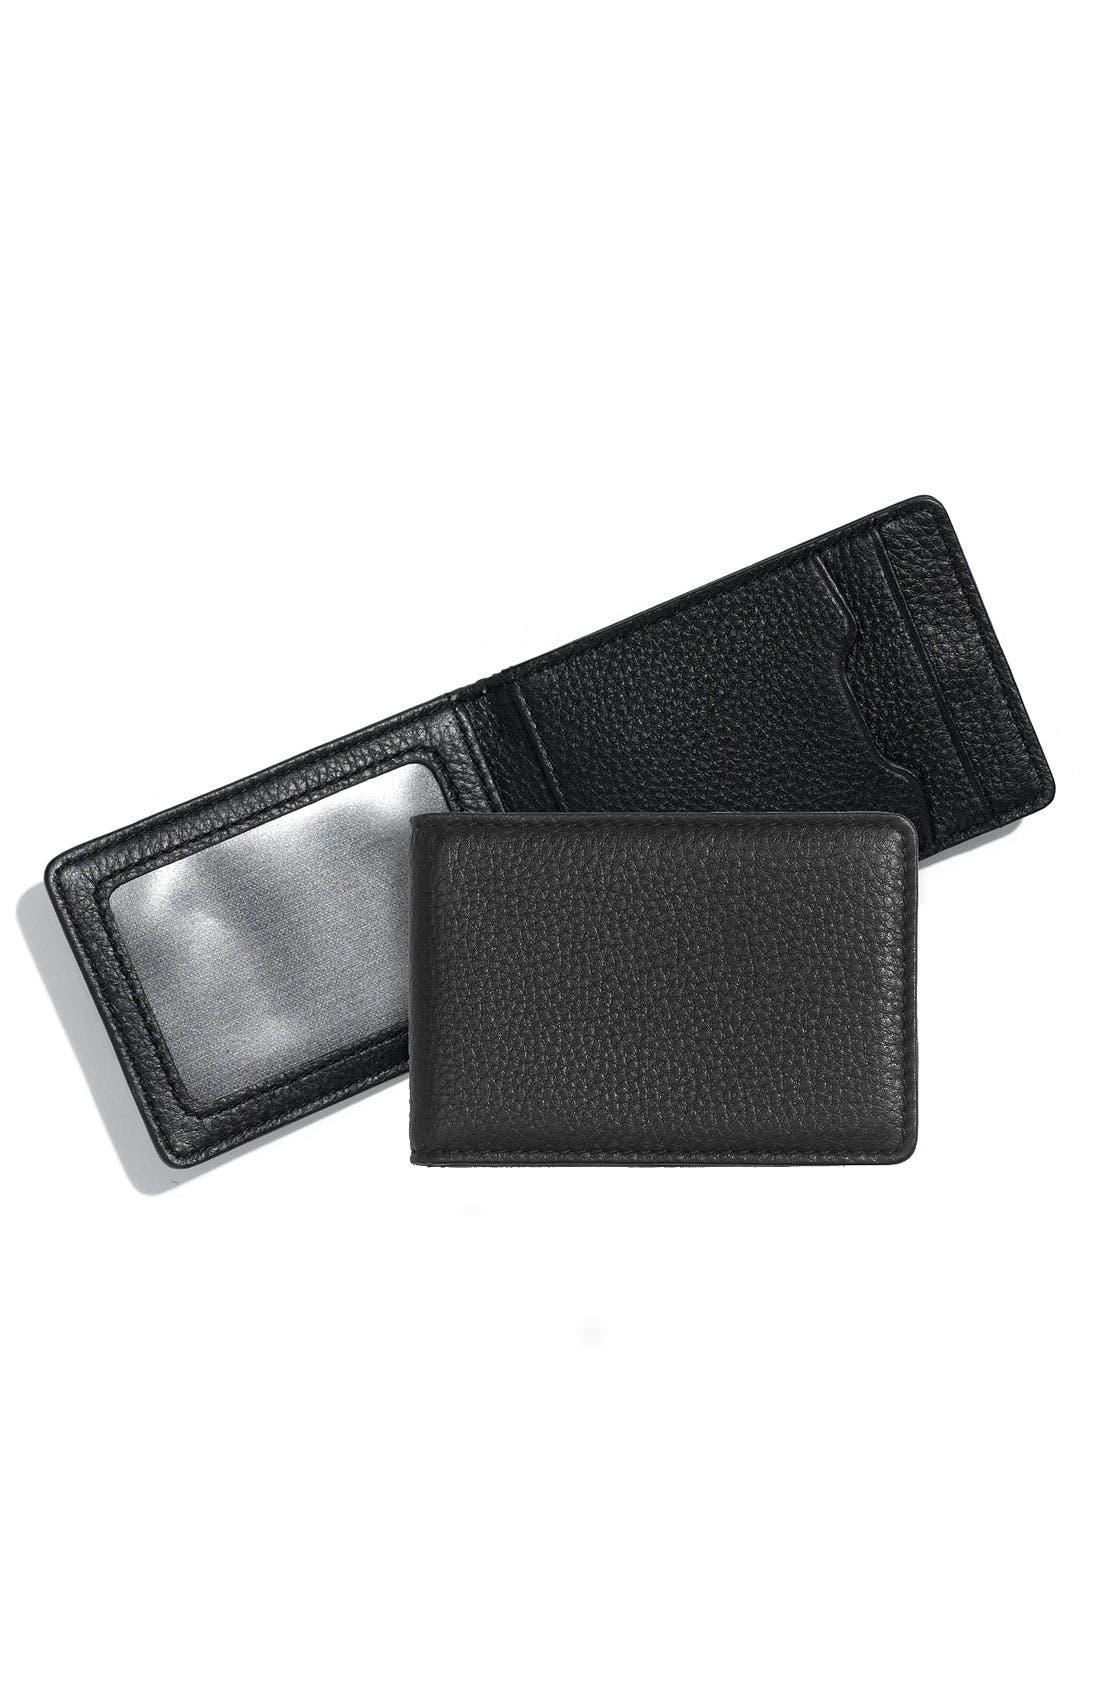 Alternate Image 1 Selected - Bosca Leather ID Wallet